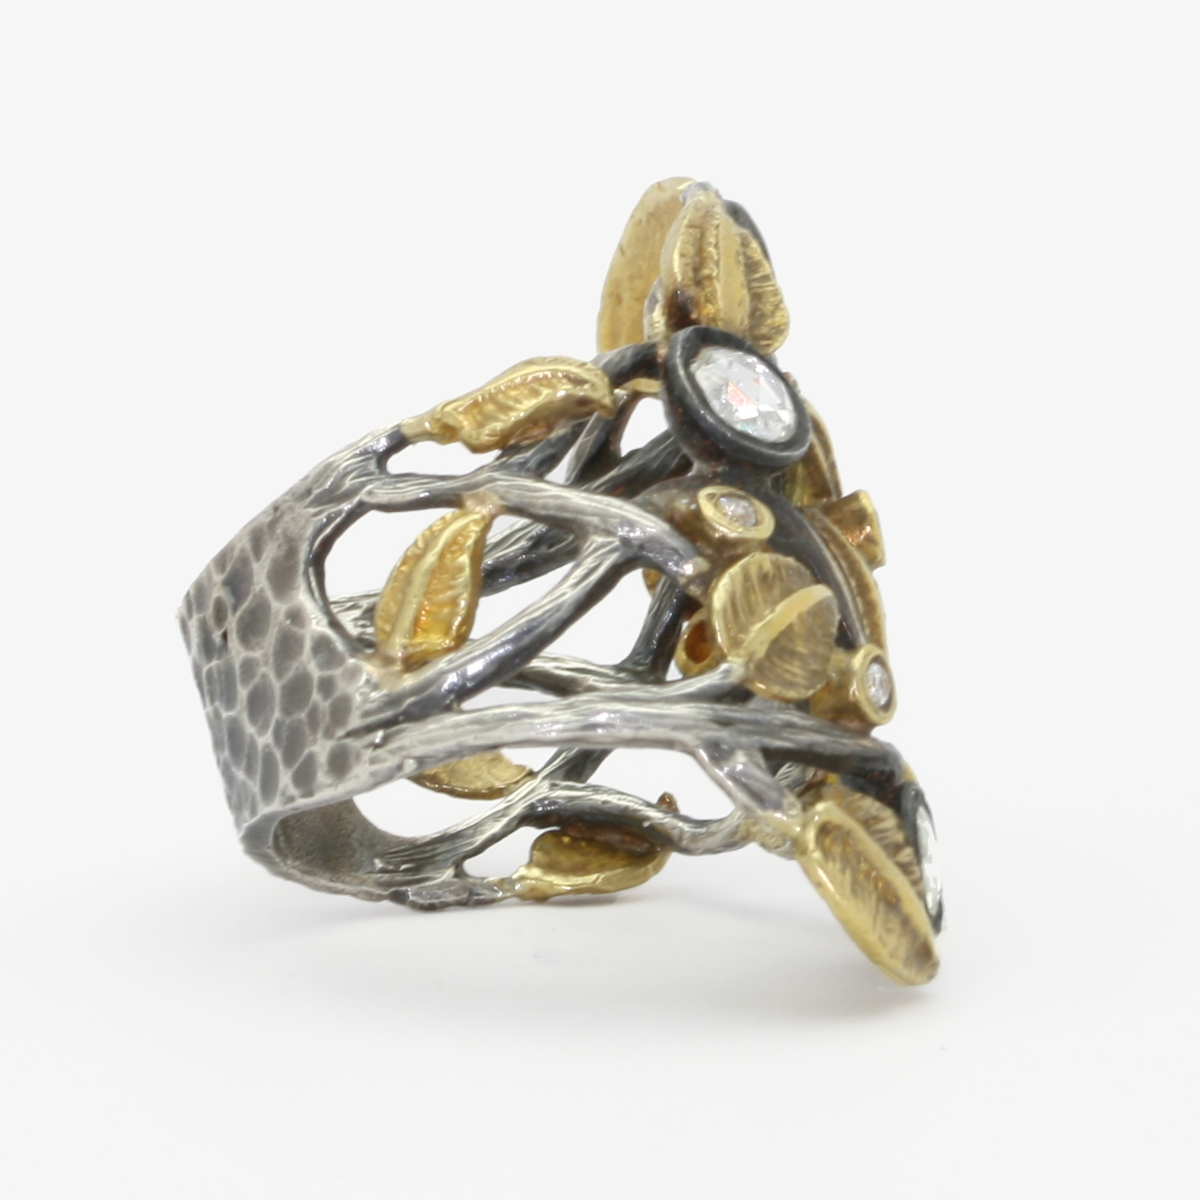 Kurtulan 24K Gold & Oxidized Silver Leaf Diamond Ring - alternate